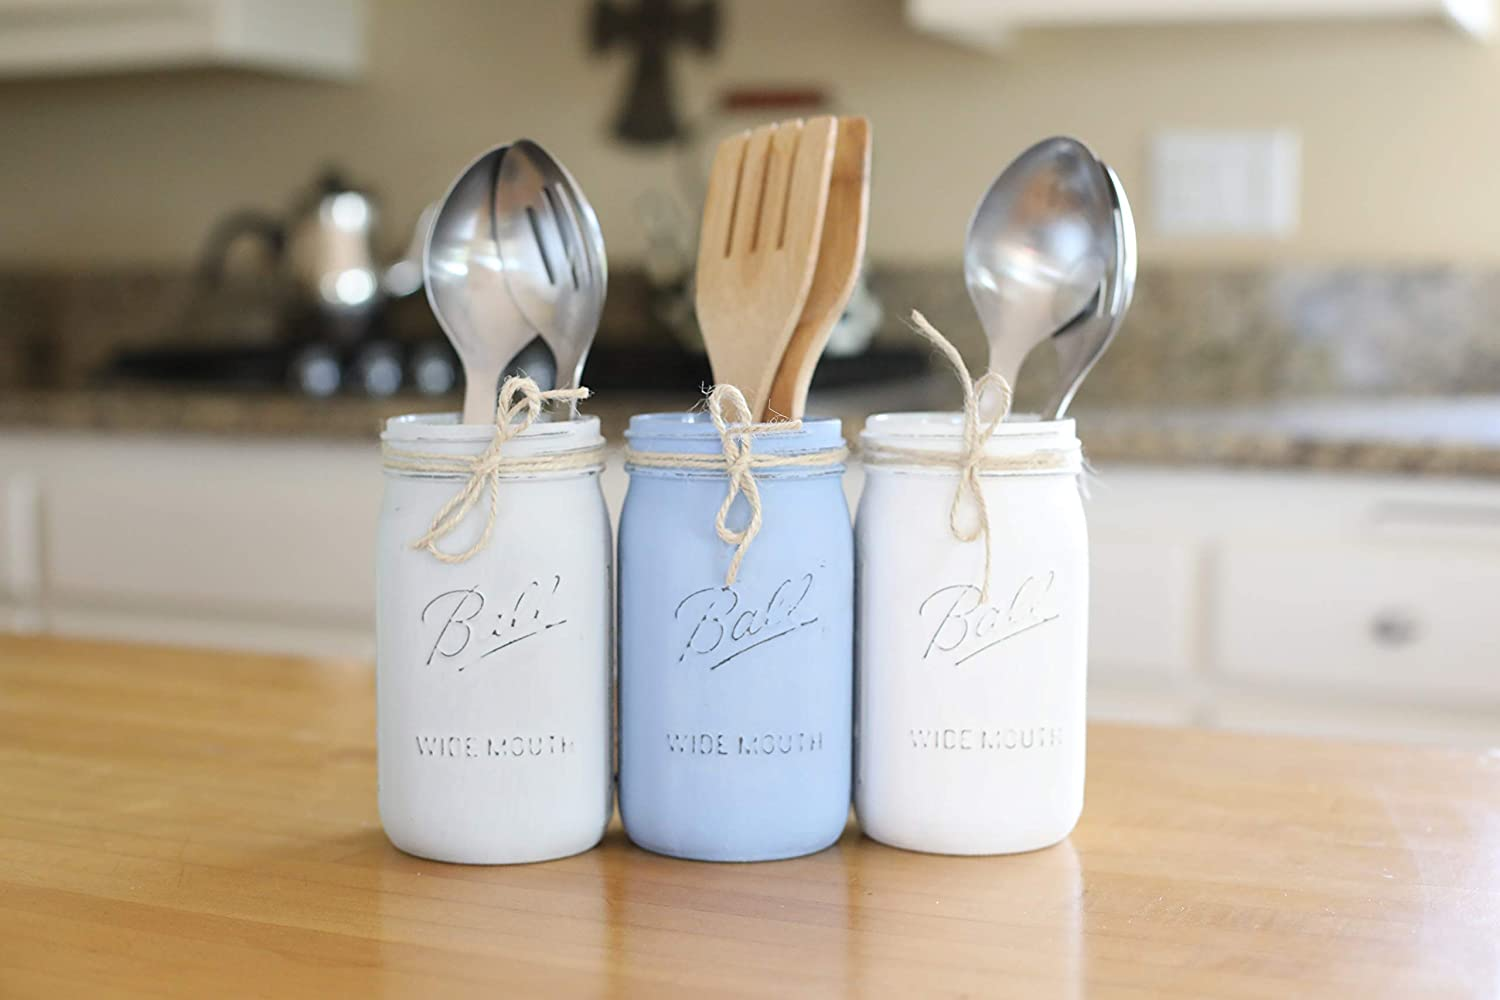 Mason Jar Kitchen Utensil Holder Set, Painted and Distressed Mason Jars, Your Choice of Jar Colors, 3 Piece Set